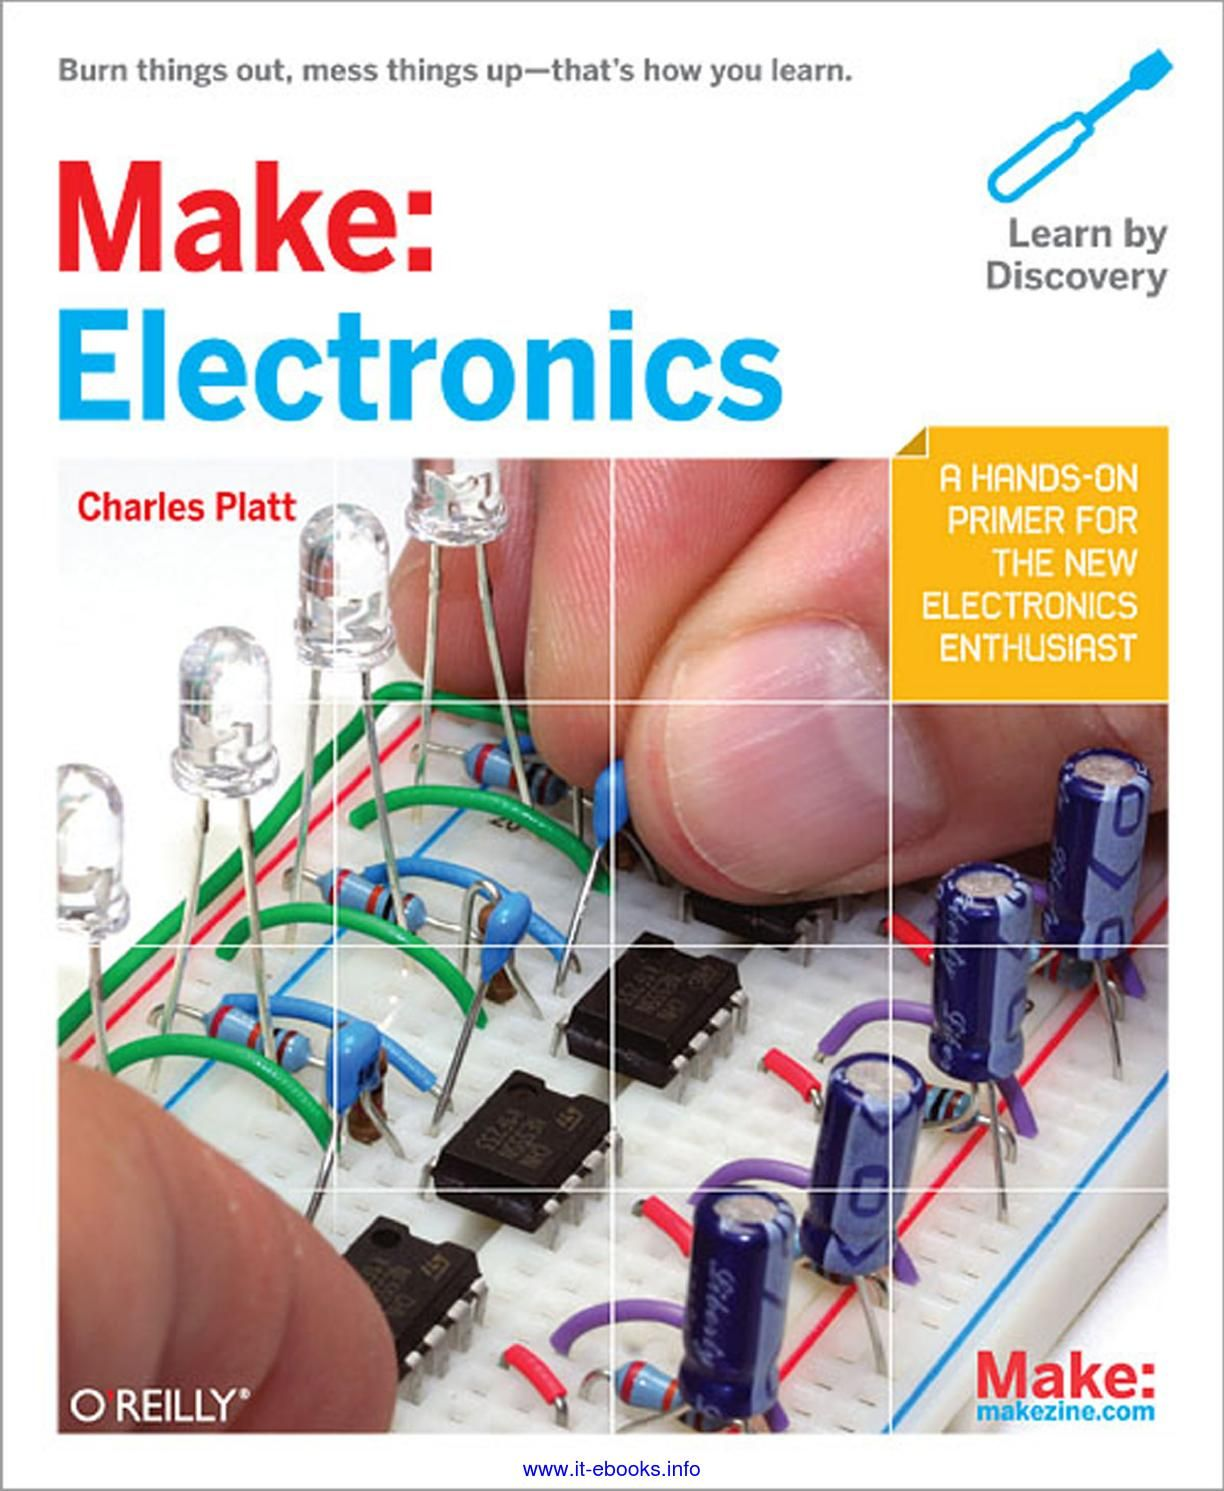 Make Electronics Arduino Projects And Diy How To Build Pcb Online Using Web Based Eda Tools Electronic Learning Through Discovery This Is Teaching At Its Best Hans Camenzind Inventor Of The 555 Timer Worlds Most Successful